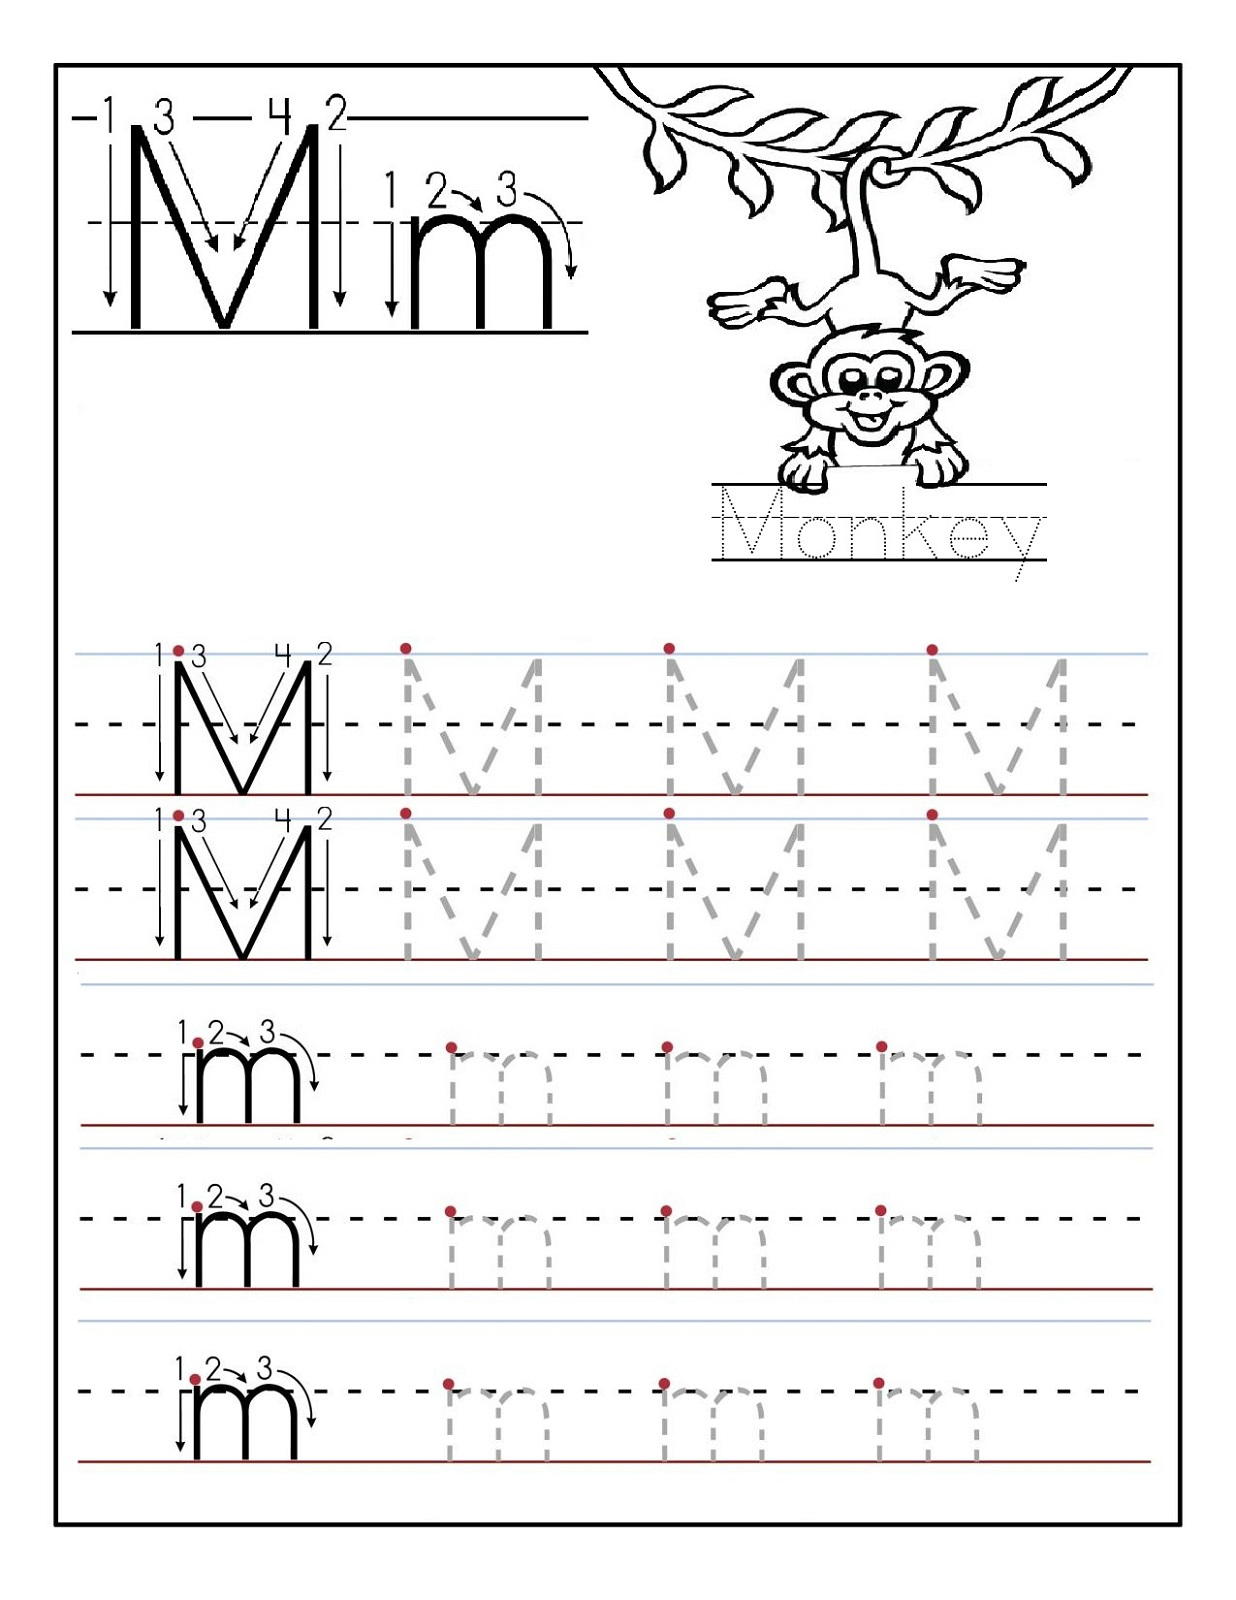 Preschool Printable Worksheets Learning Printable